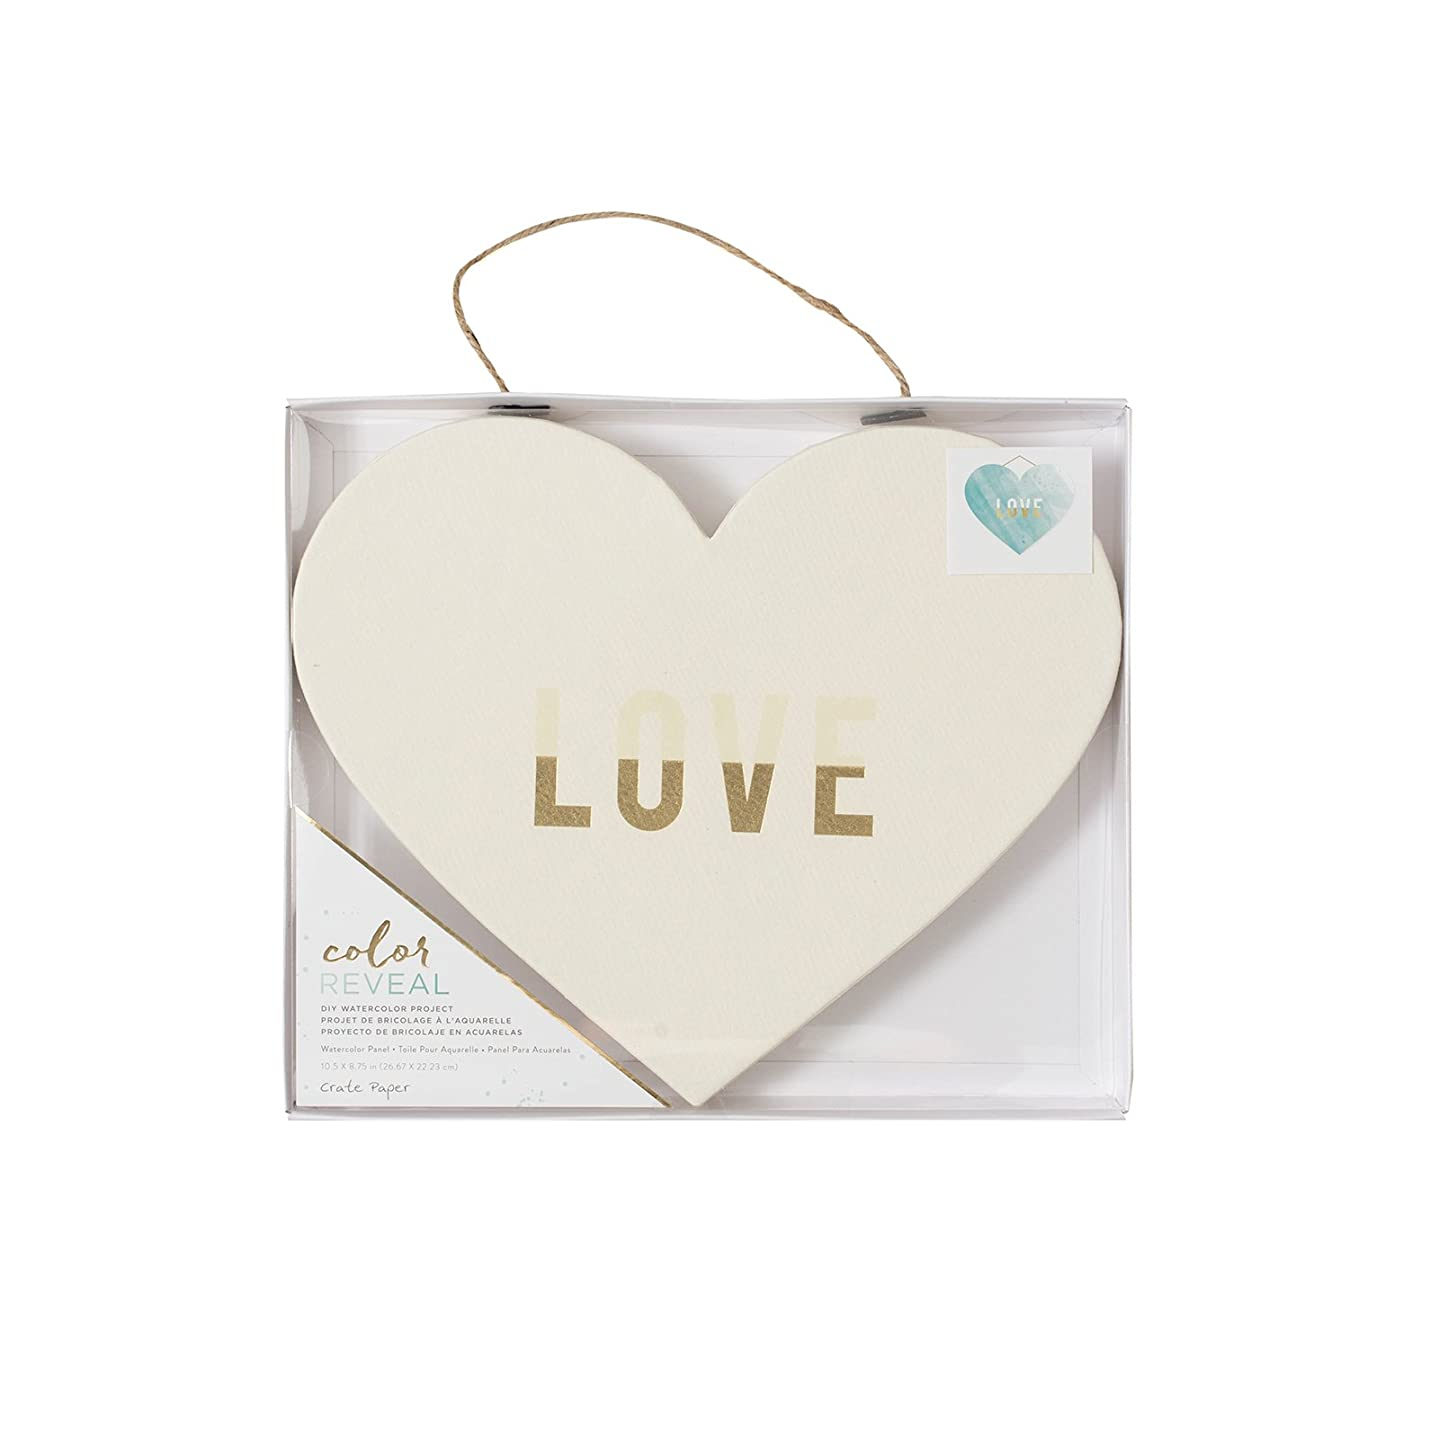 American Crafts Crate Paper Watercolor Heart Panel Color Reveal 10 x 9 Inch Love